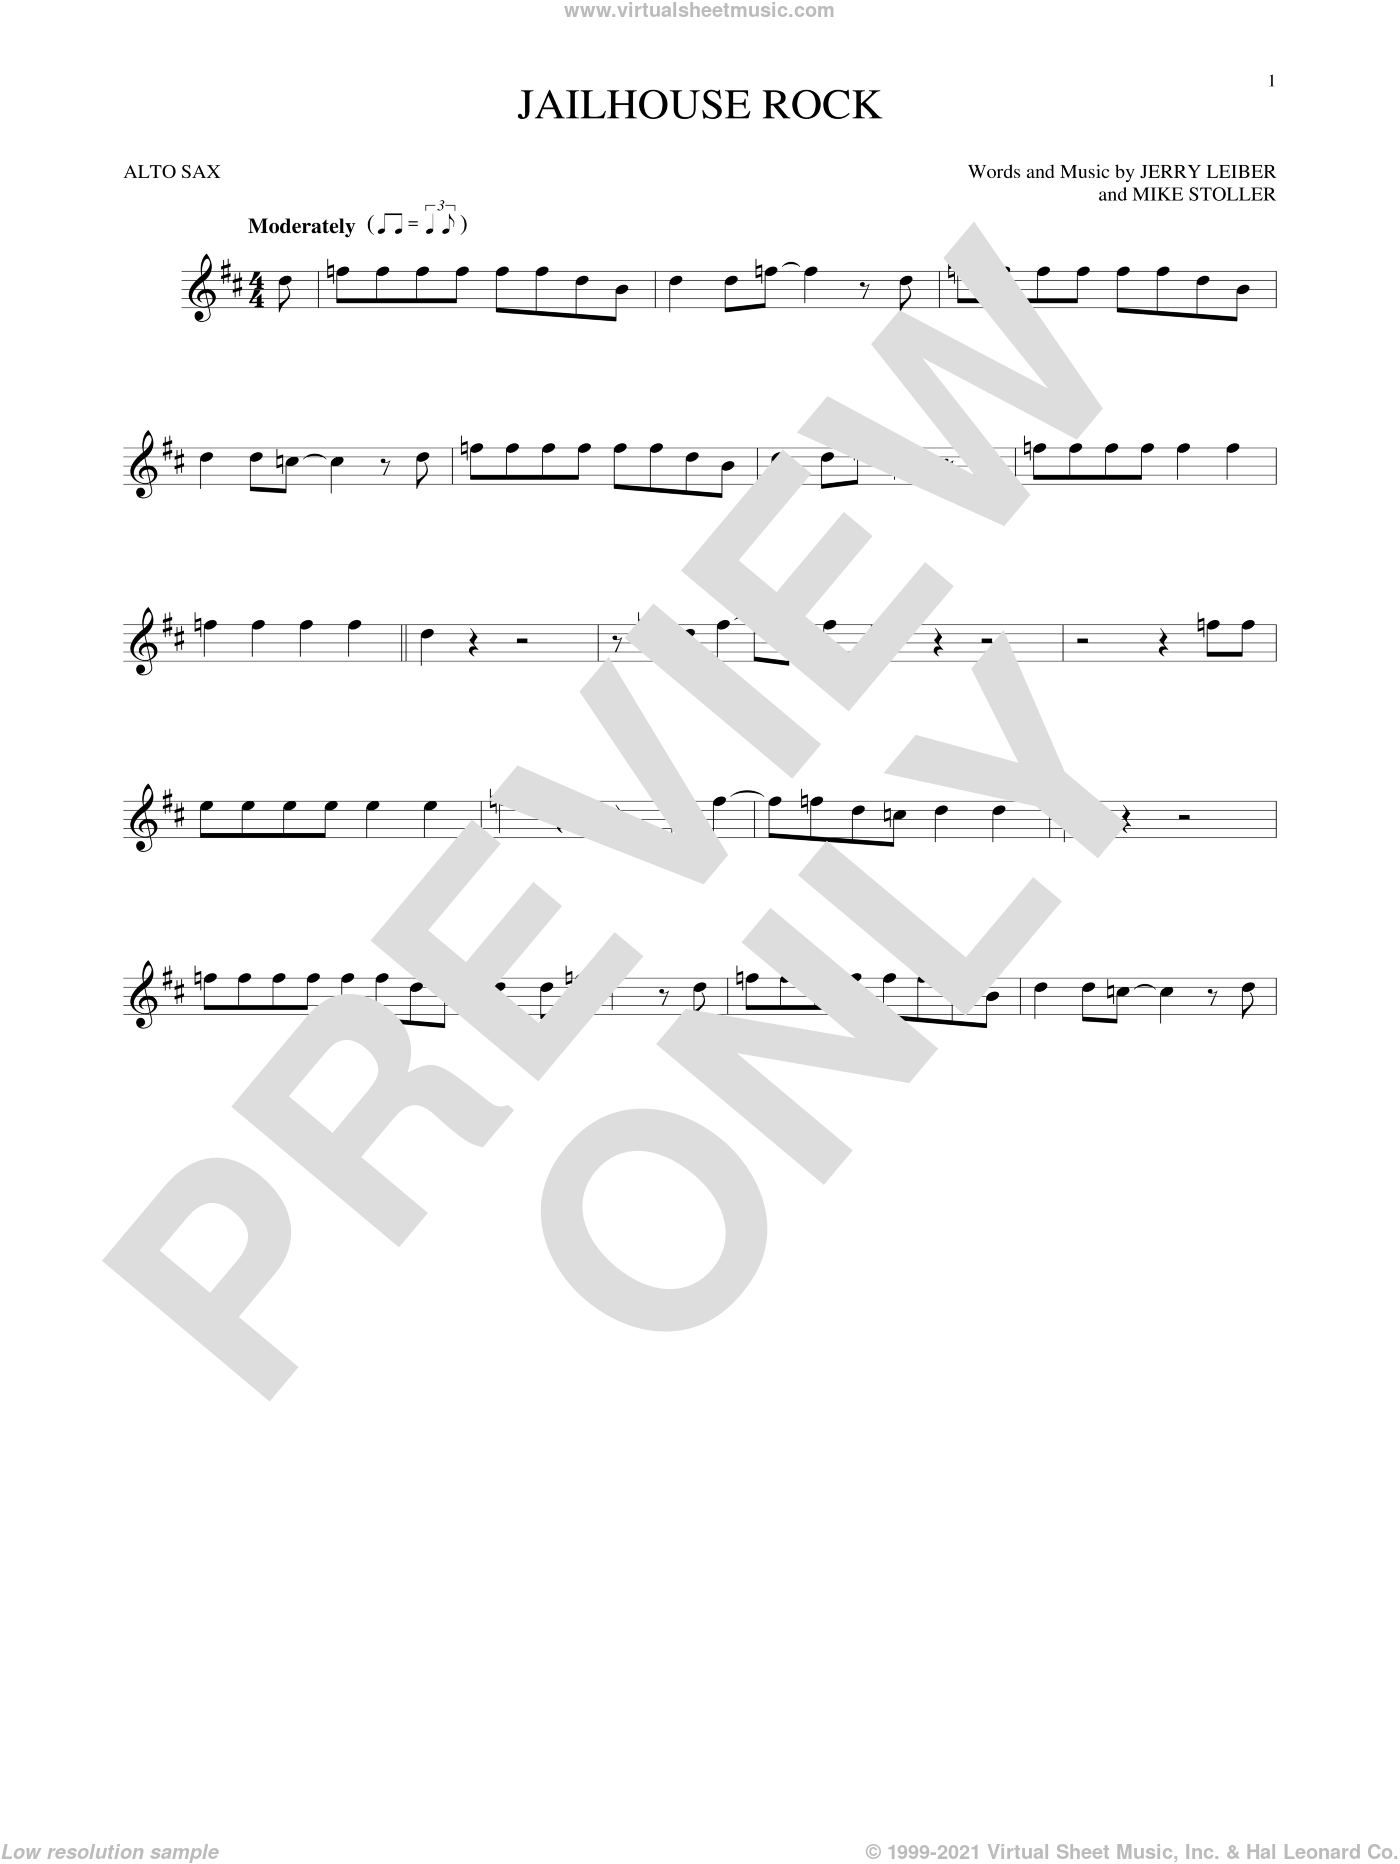 Jailhouse Rock sheet music for alto saxophone solo by Elvis Presley, Jerry Leiber and Mike Stoller, intermediate